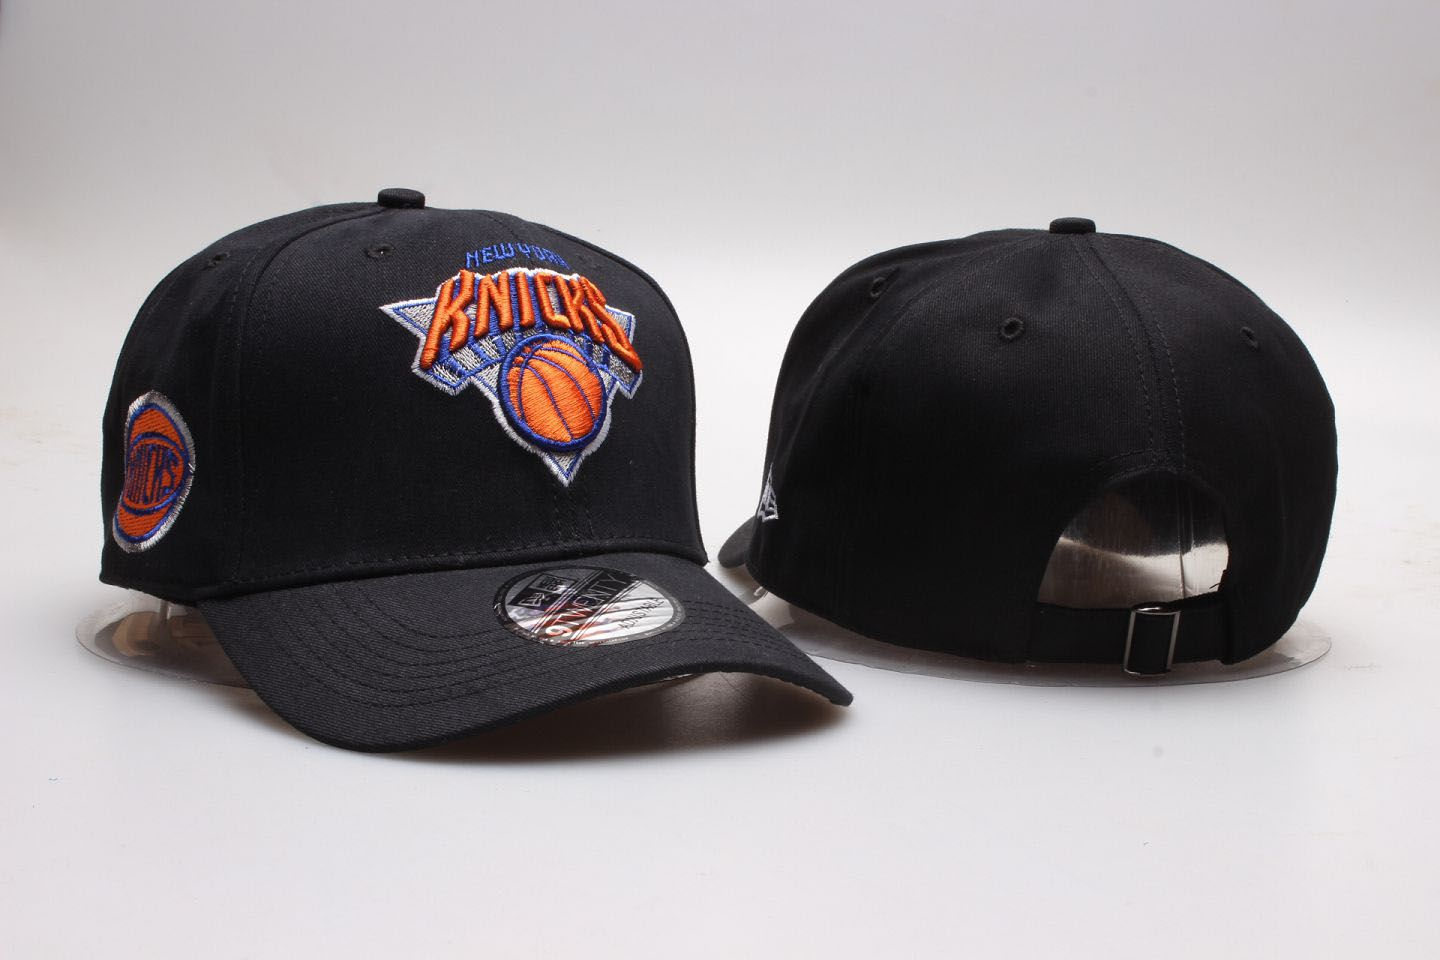 NBA New York Knicks Snapback hat 201811252